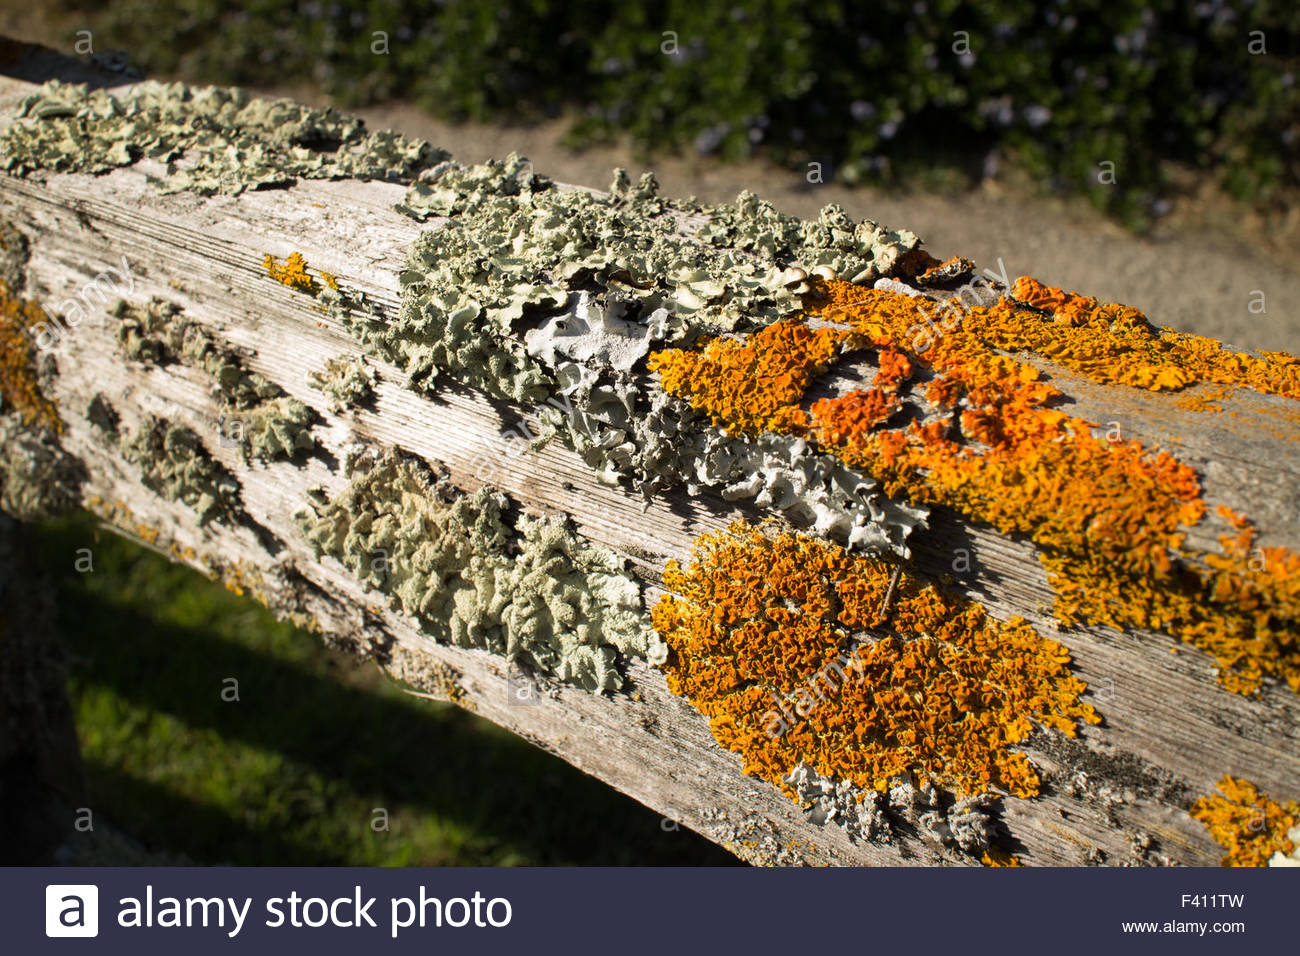 Thick colorful lichens on a wooden fence, featuring a horizontal upper rail. The lichens are green and orange - Stock Image